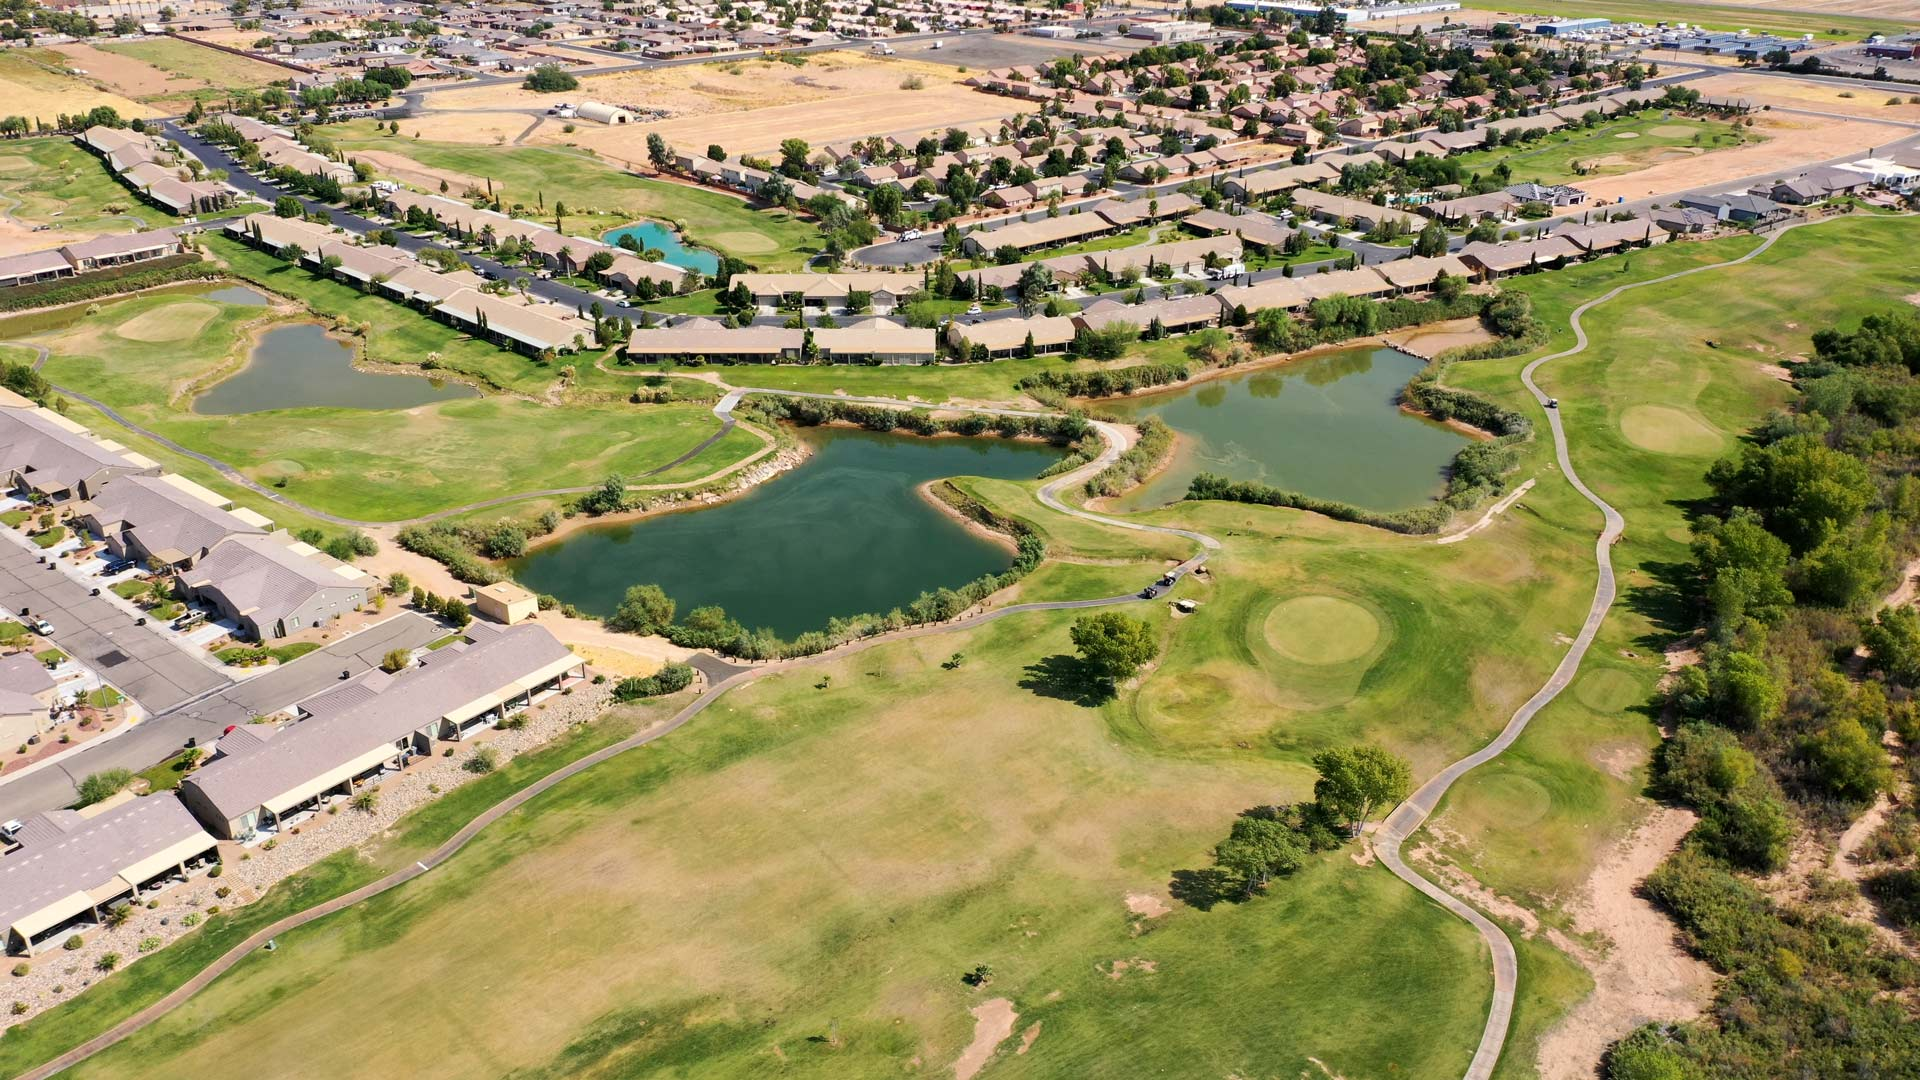 Rivers Bend homes for sale mesquite-nv